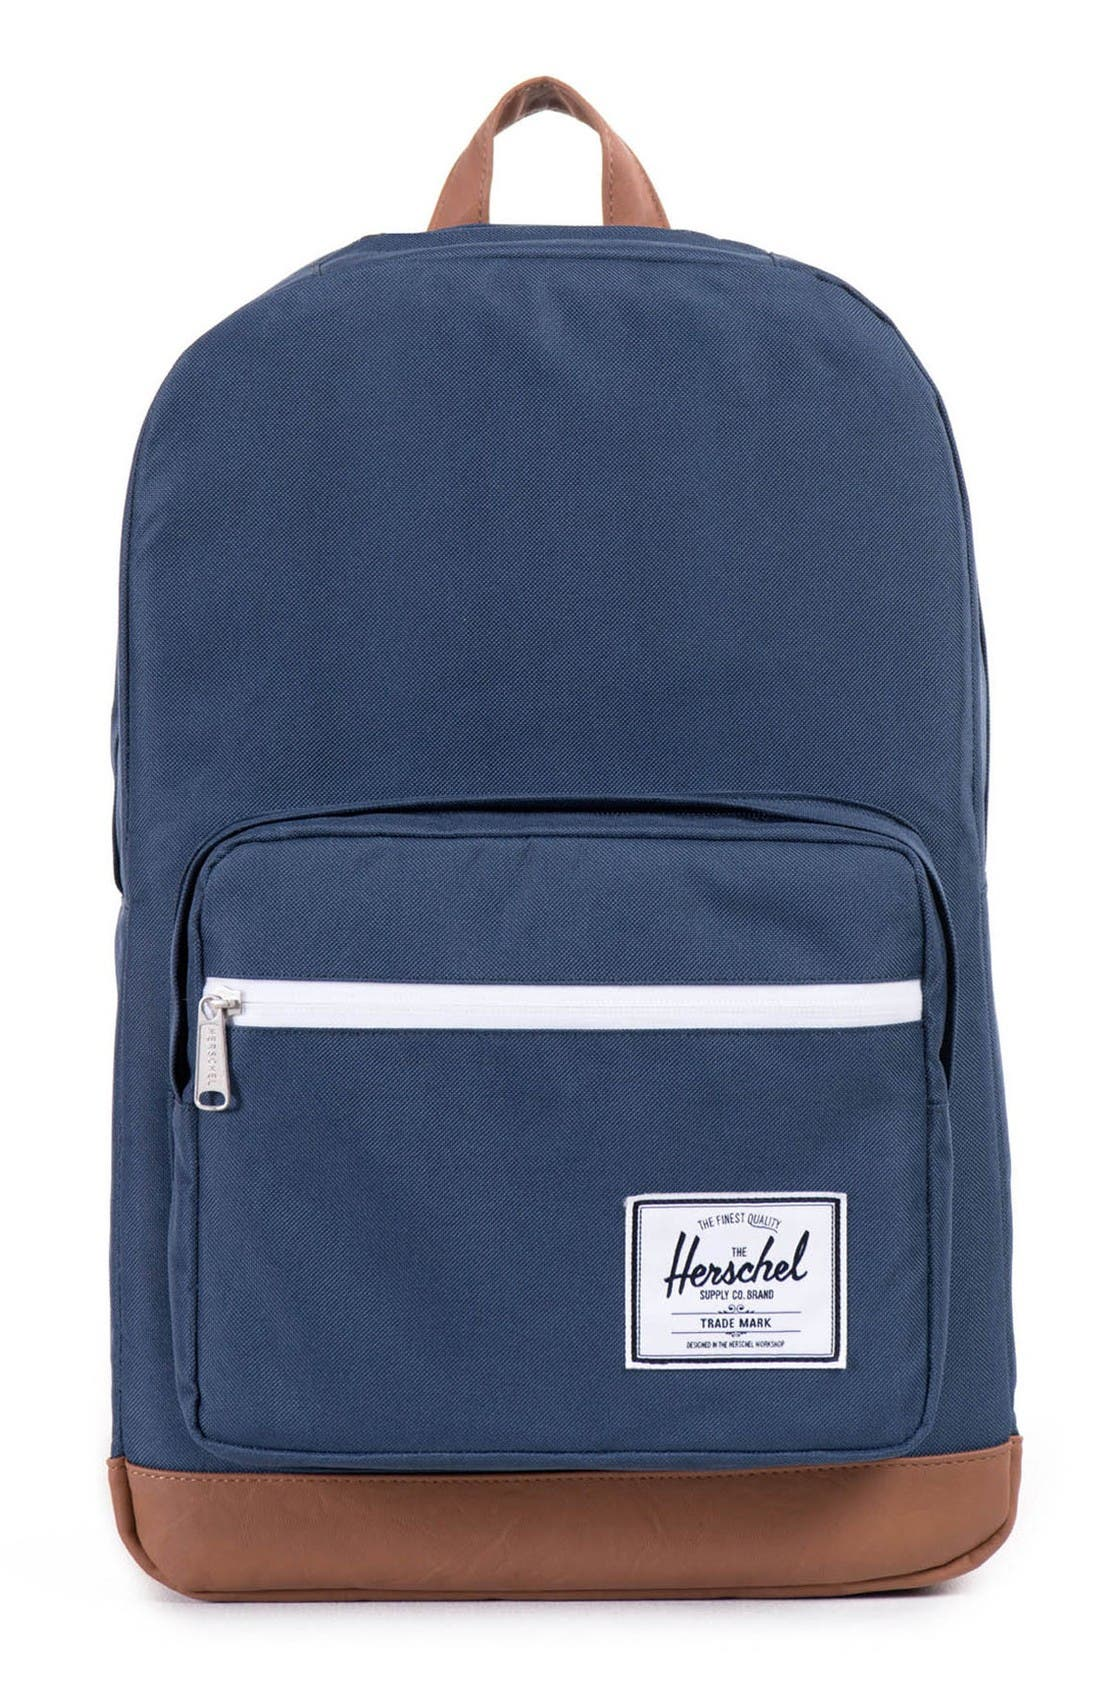 85253b92cf0 Herschel Backpacks